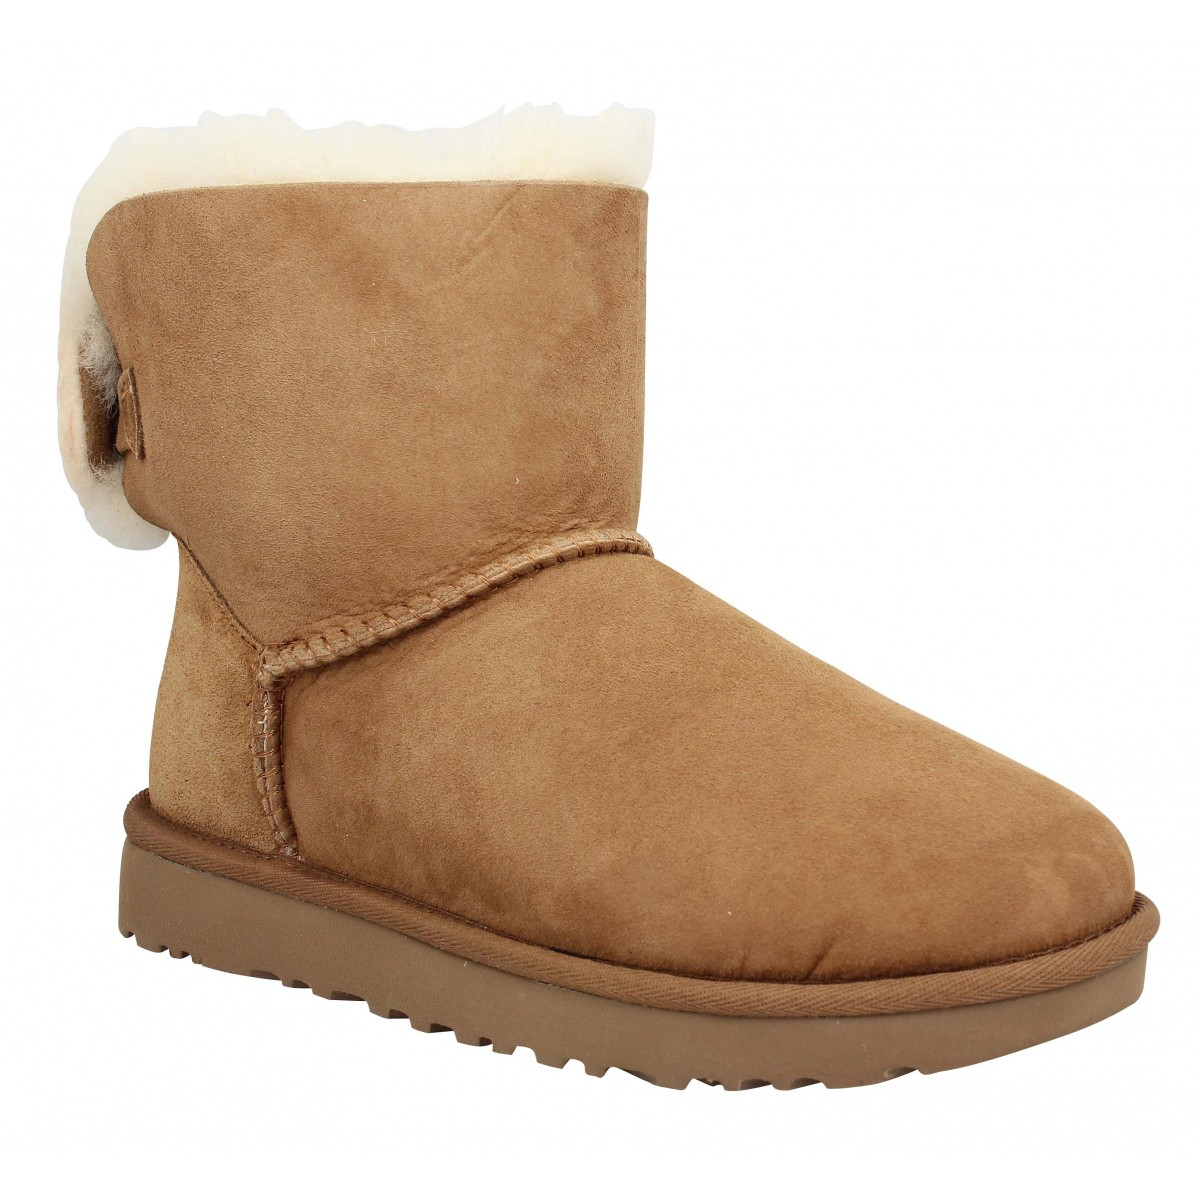 Bottines UGG Arielle velours Femme Chestnut